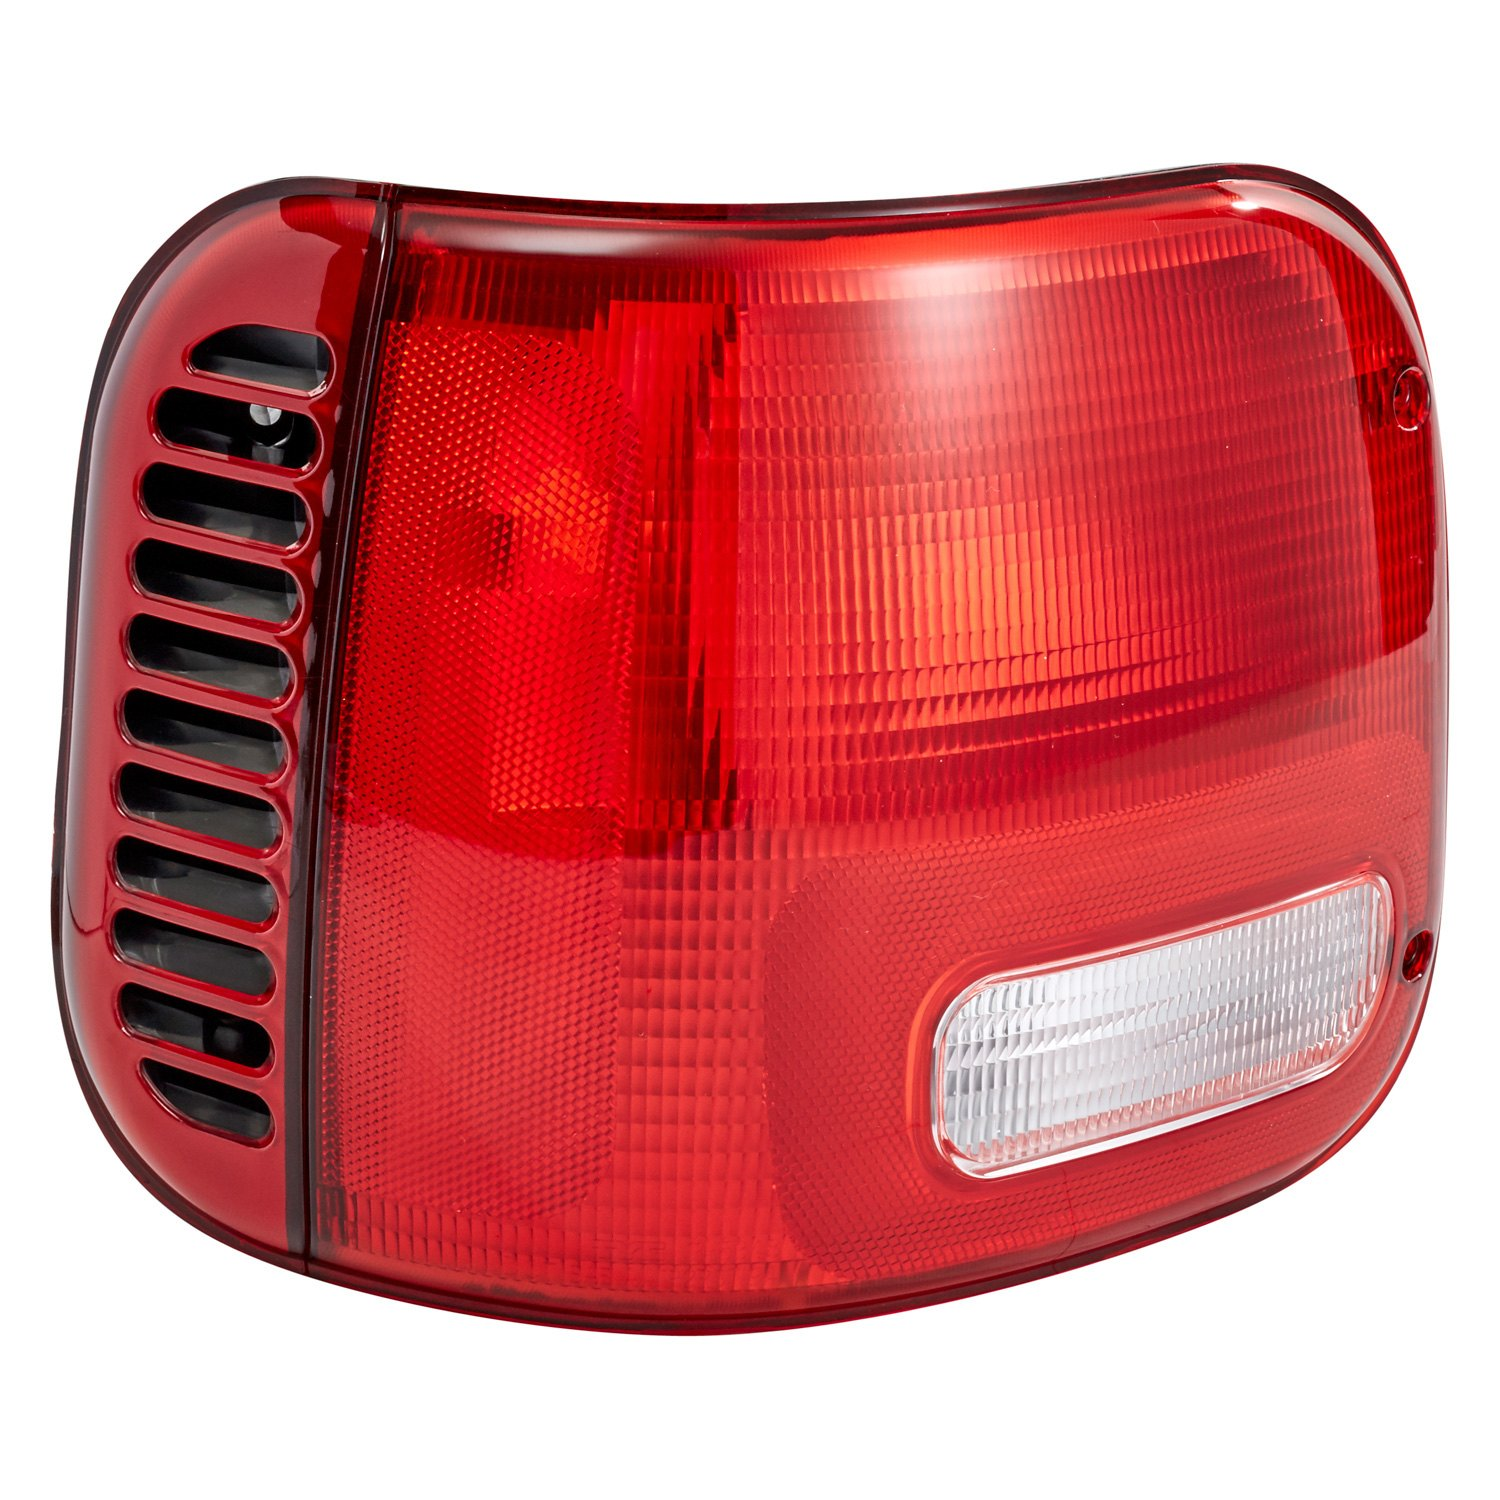 tyc dodge ram van 1999 2001 replacement tail light. Black Bedroom Furniture Sets. Home Design Ideas